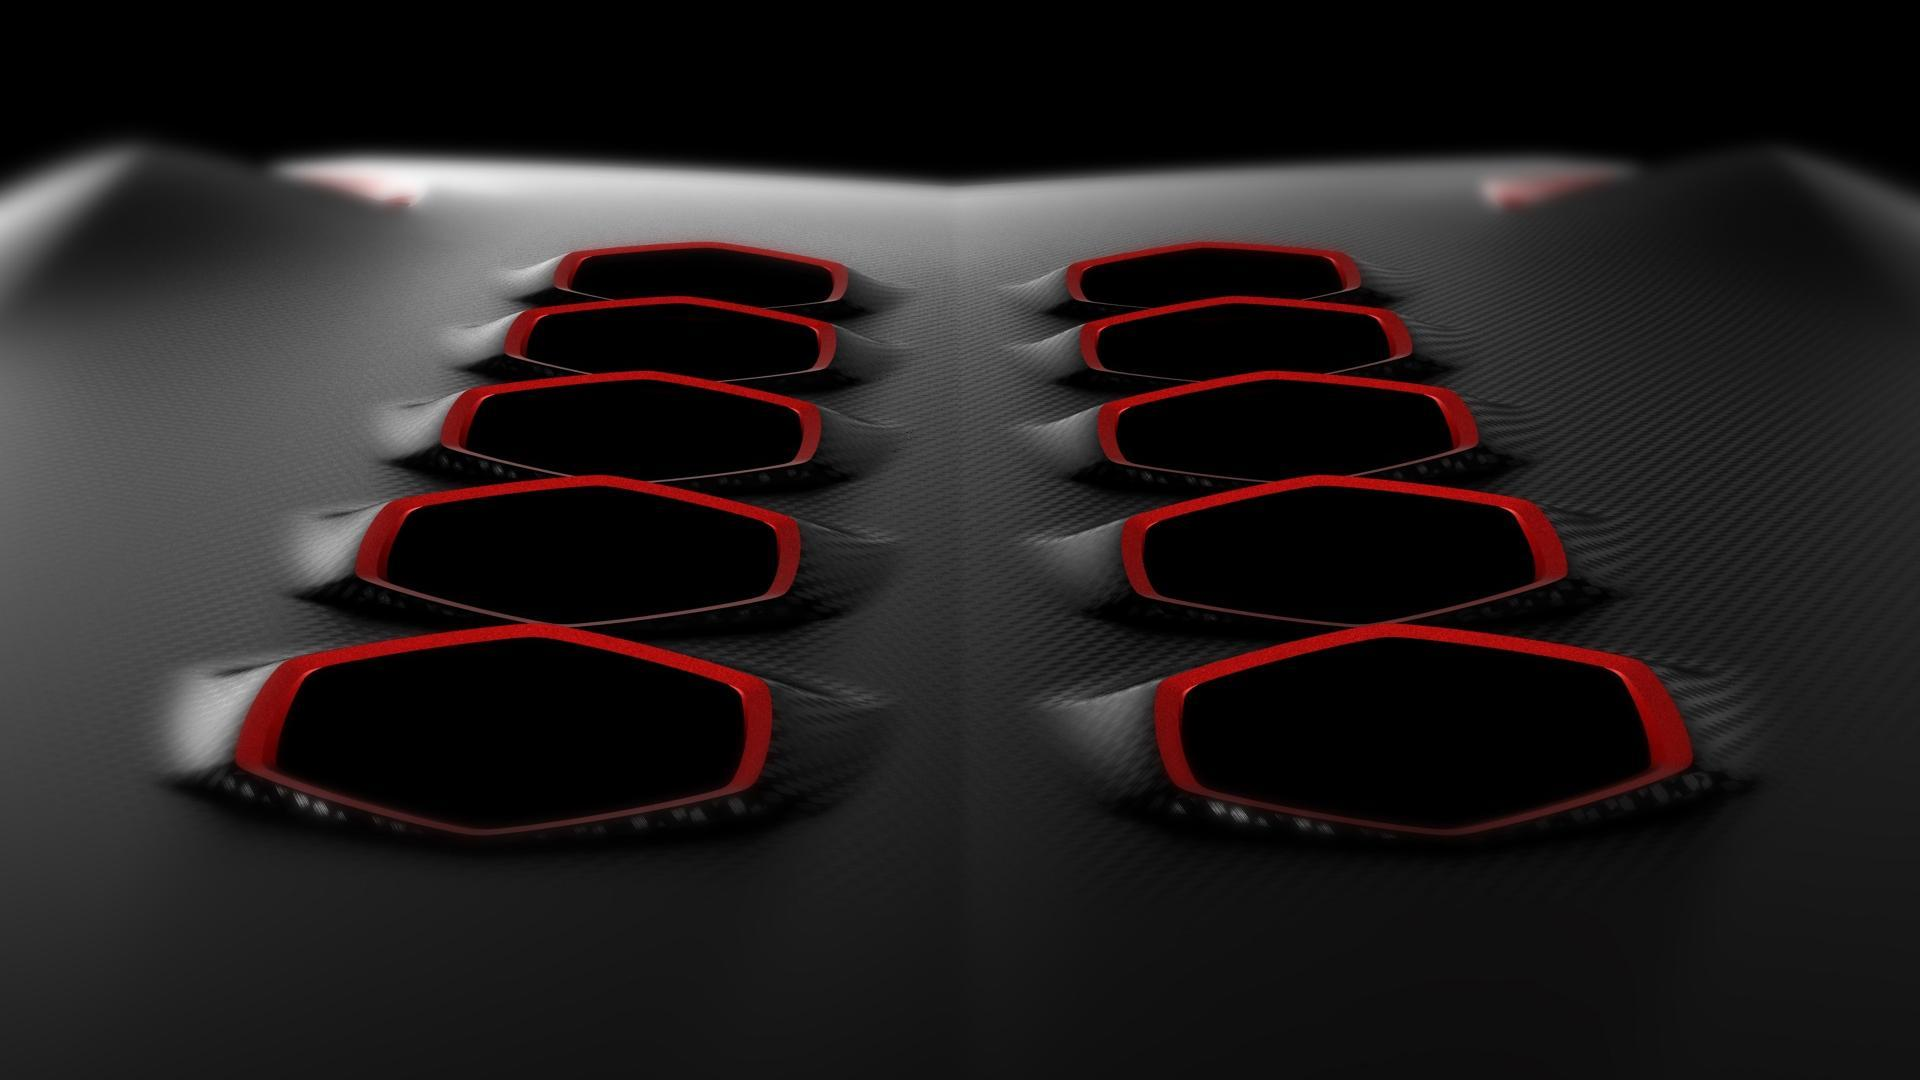 Hd wallpaper red and black - Red And Black Logo Design Backgrounds Widescreen And Hd Background